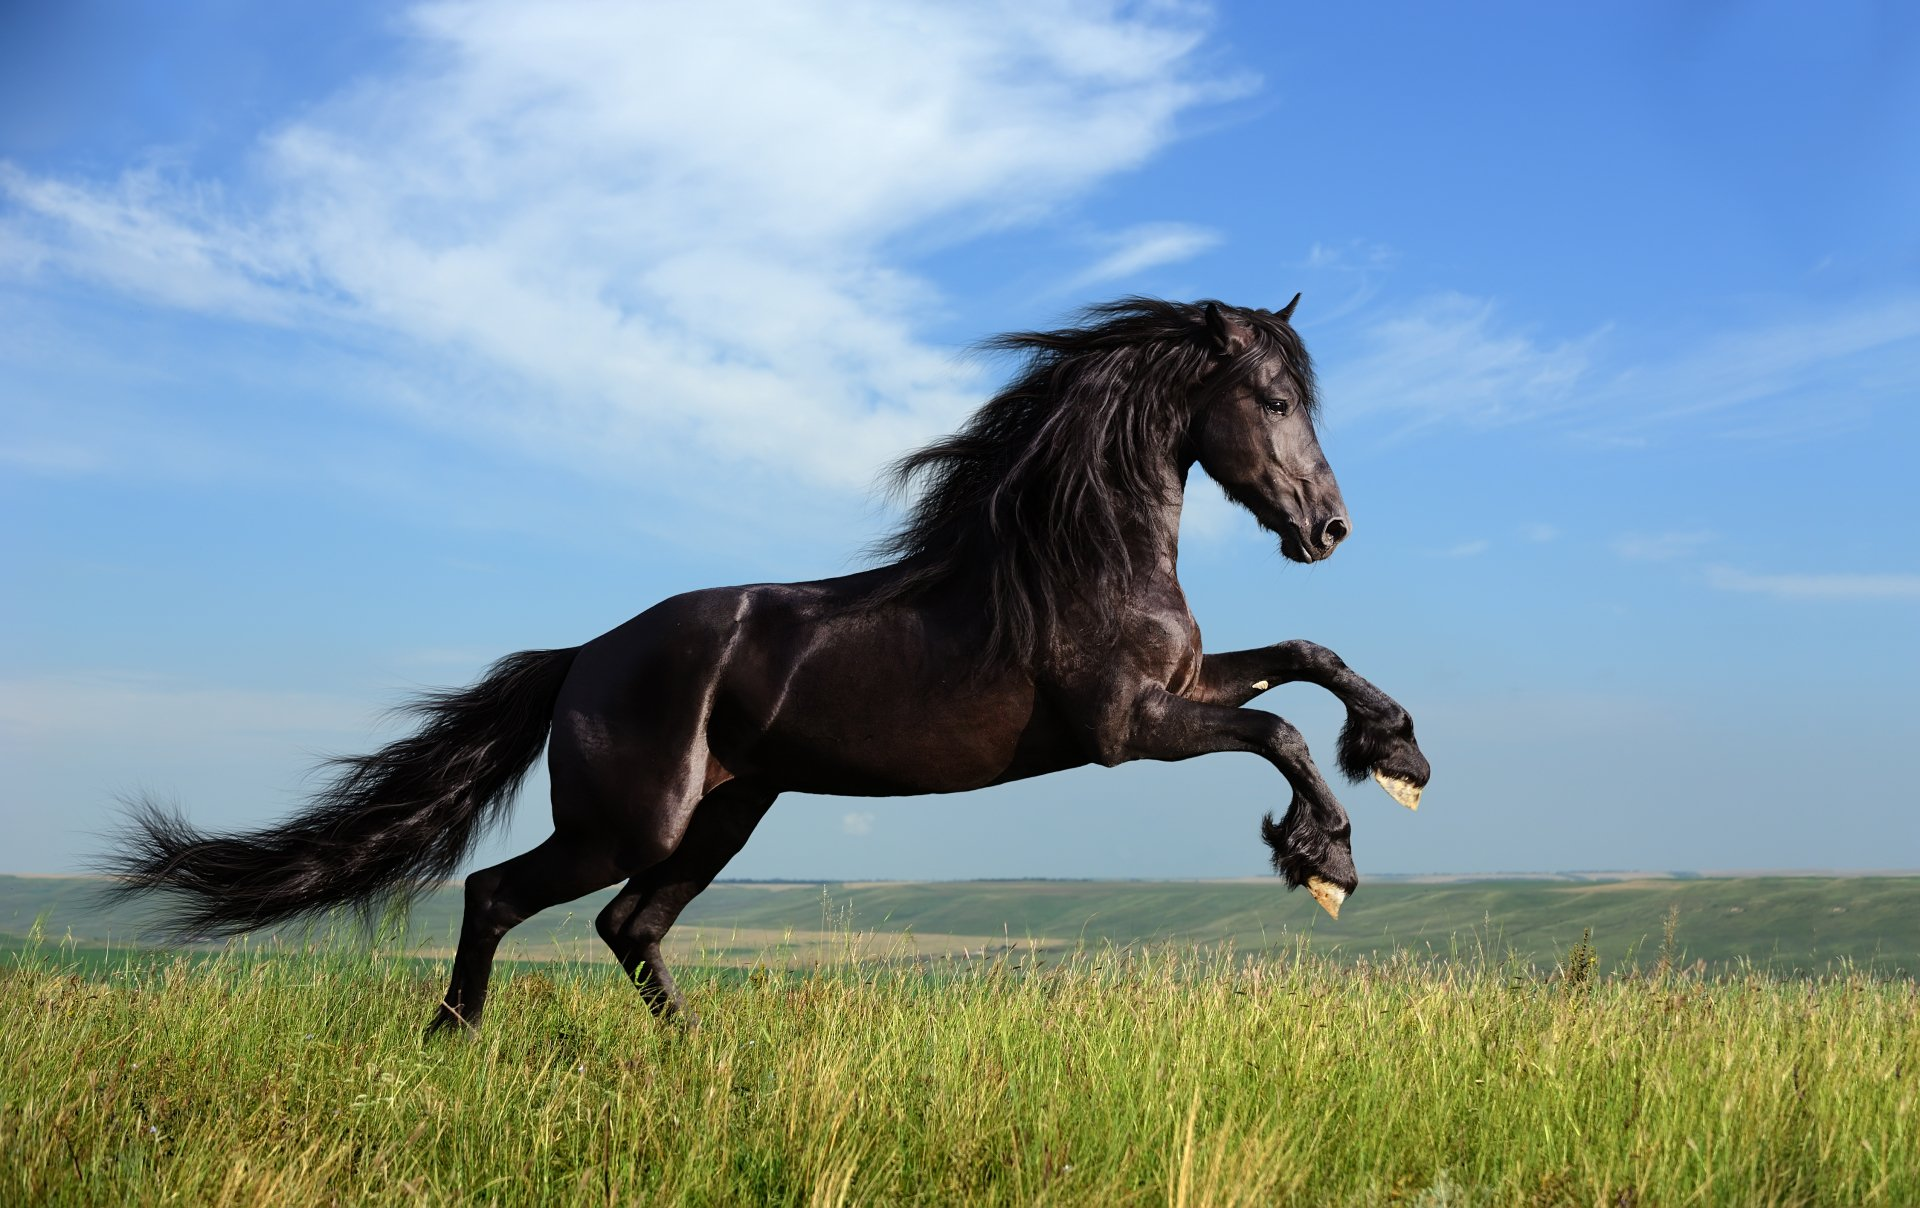 222 4k Ultra Hd Horse Wallpapers Background Images Wallpaper Abyss